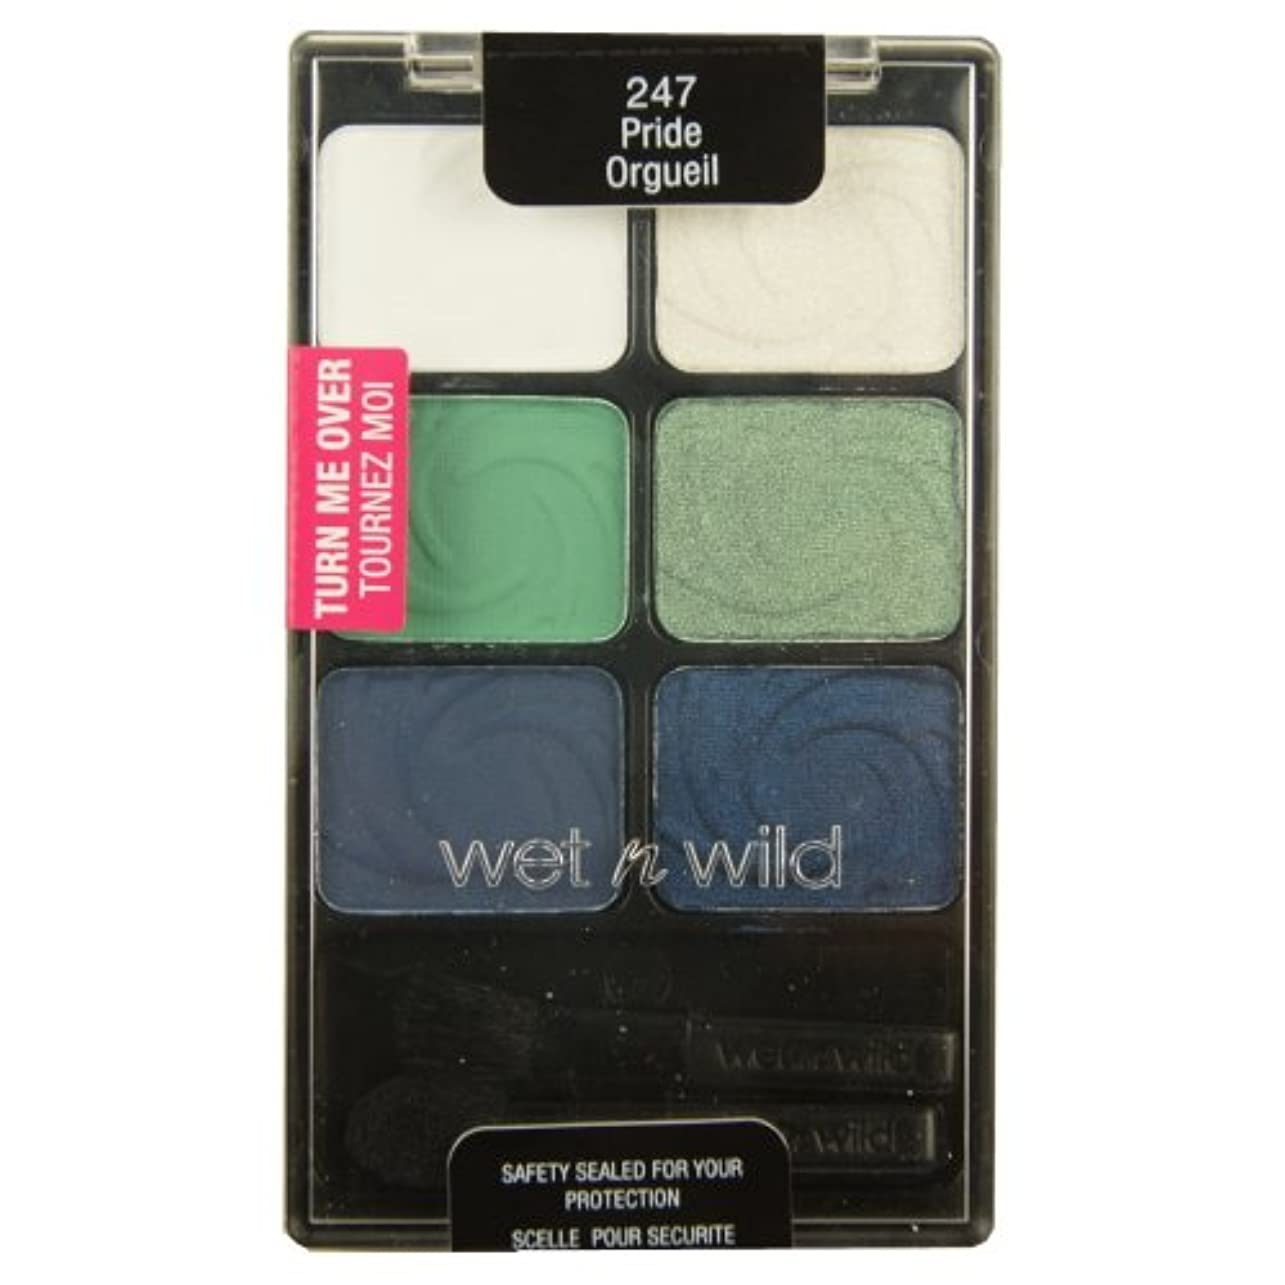 すごい絶えず懸念(3 Pack) WET N WILD Color Icon Eyeshadow Palette - Pride (DC) (並行輸入品)